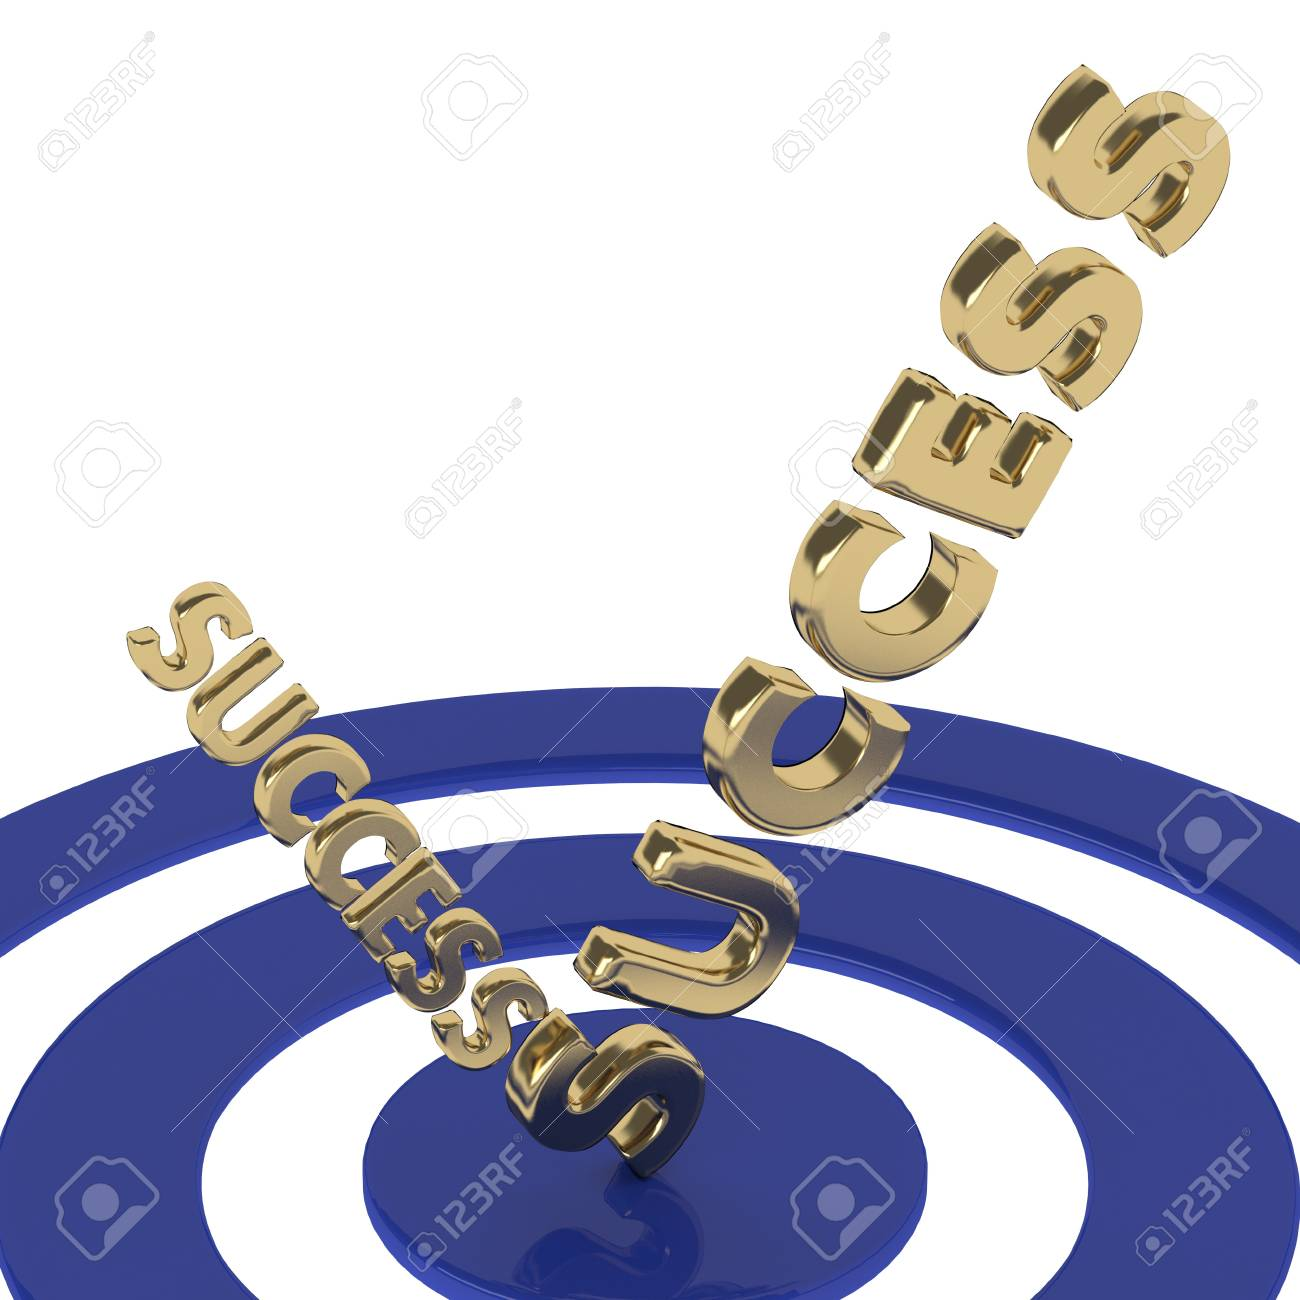 Success concept Stock Photo - 20119575